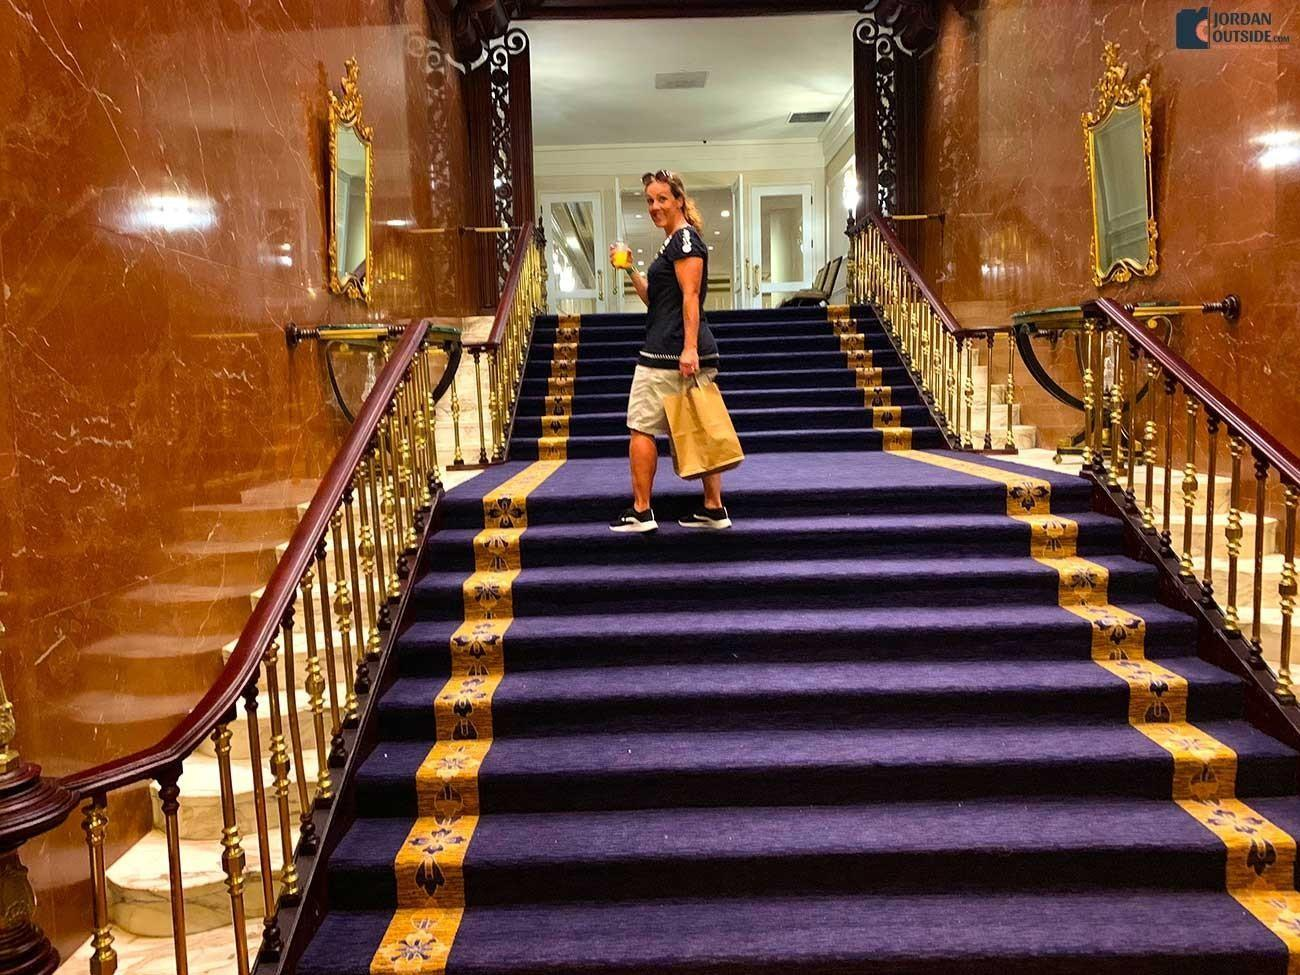 Julie on the purple staircase